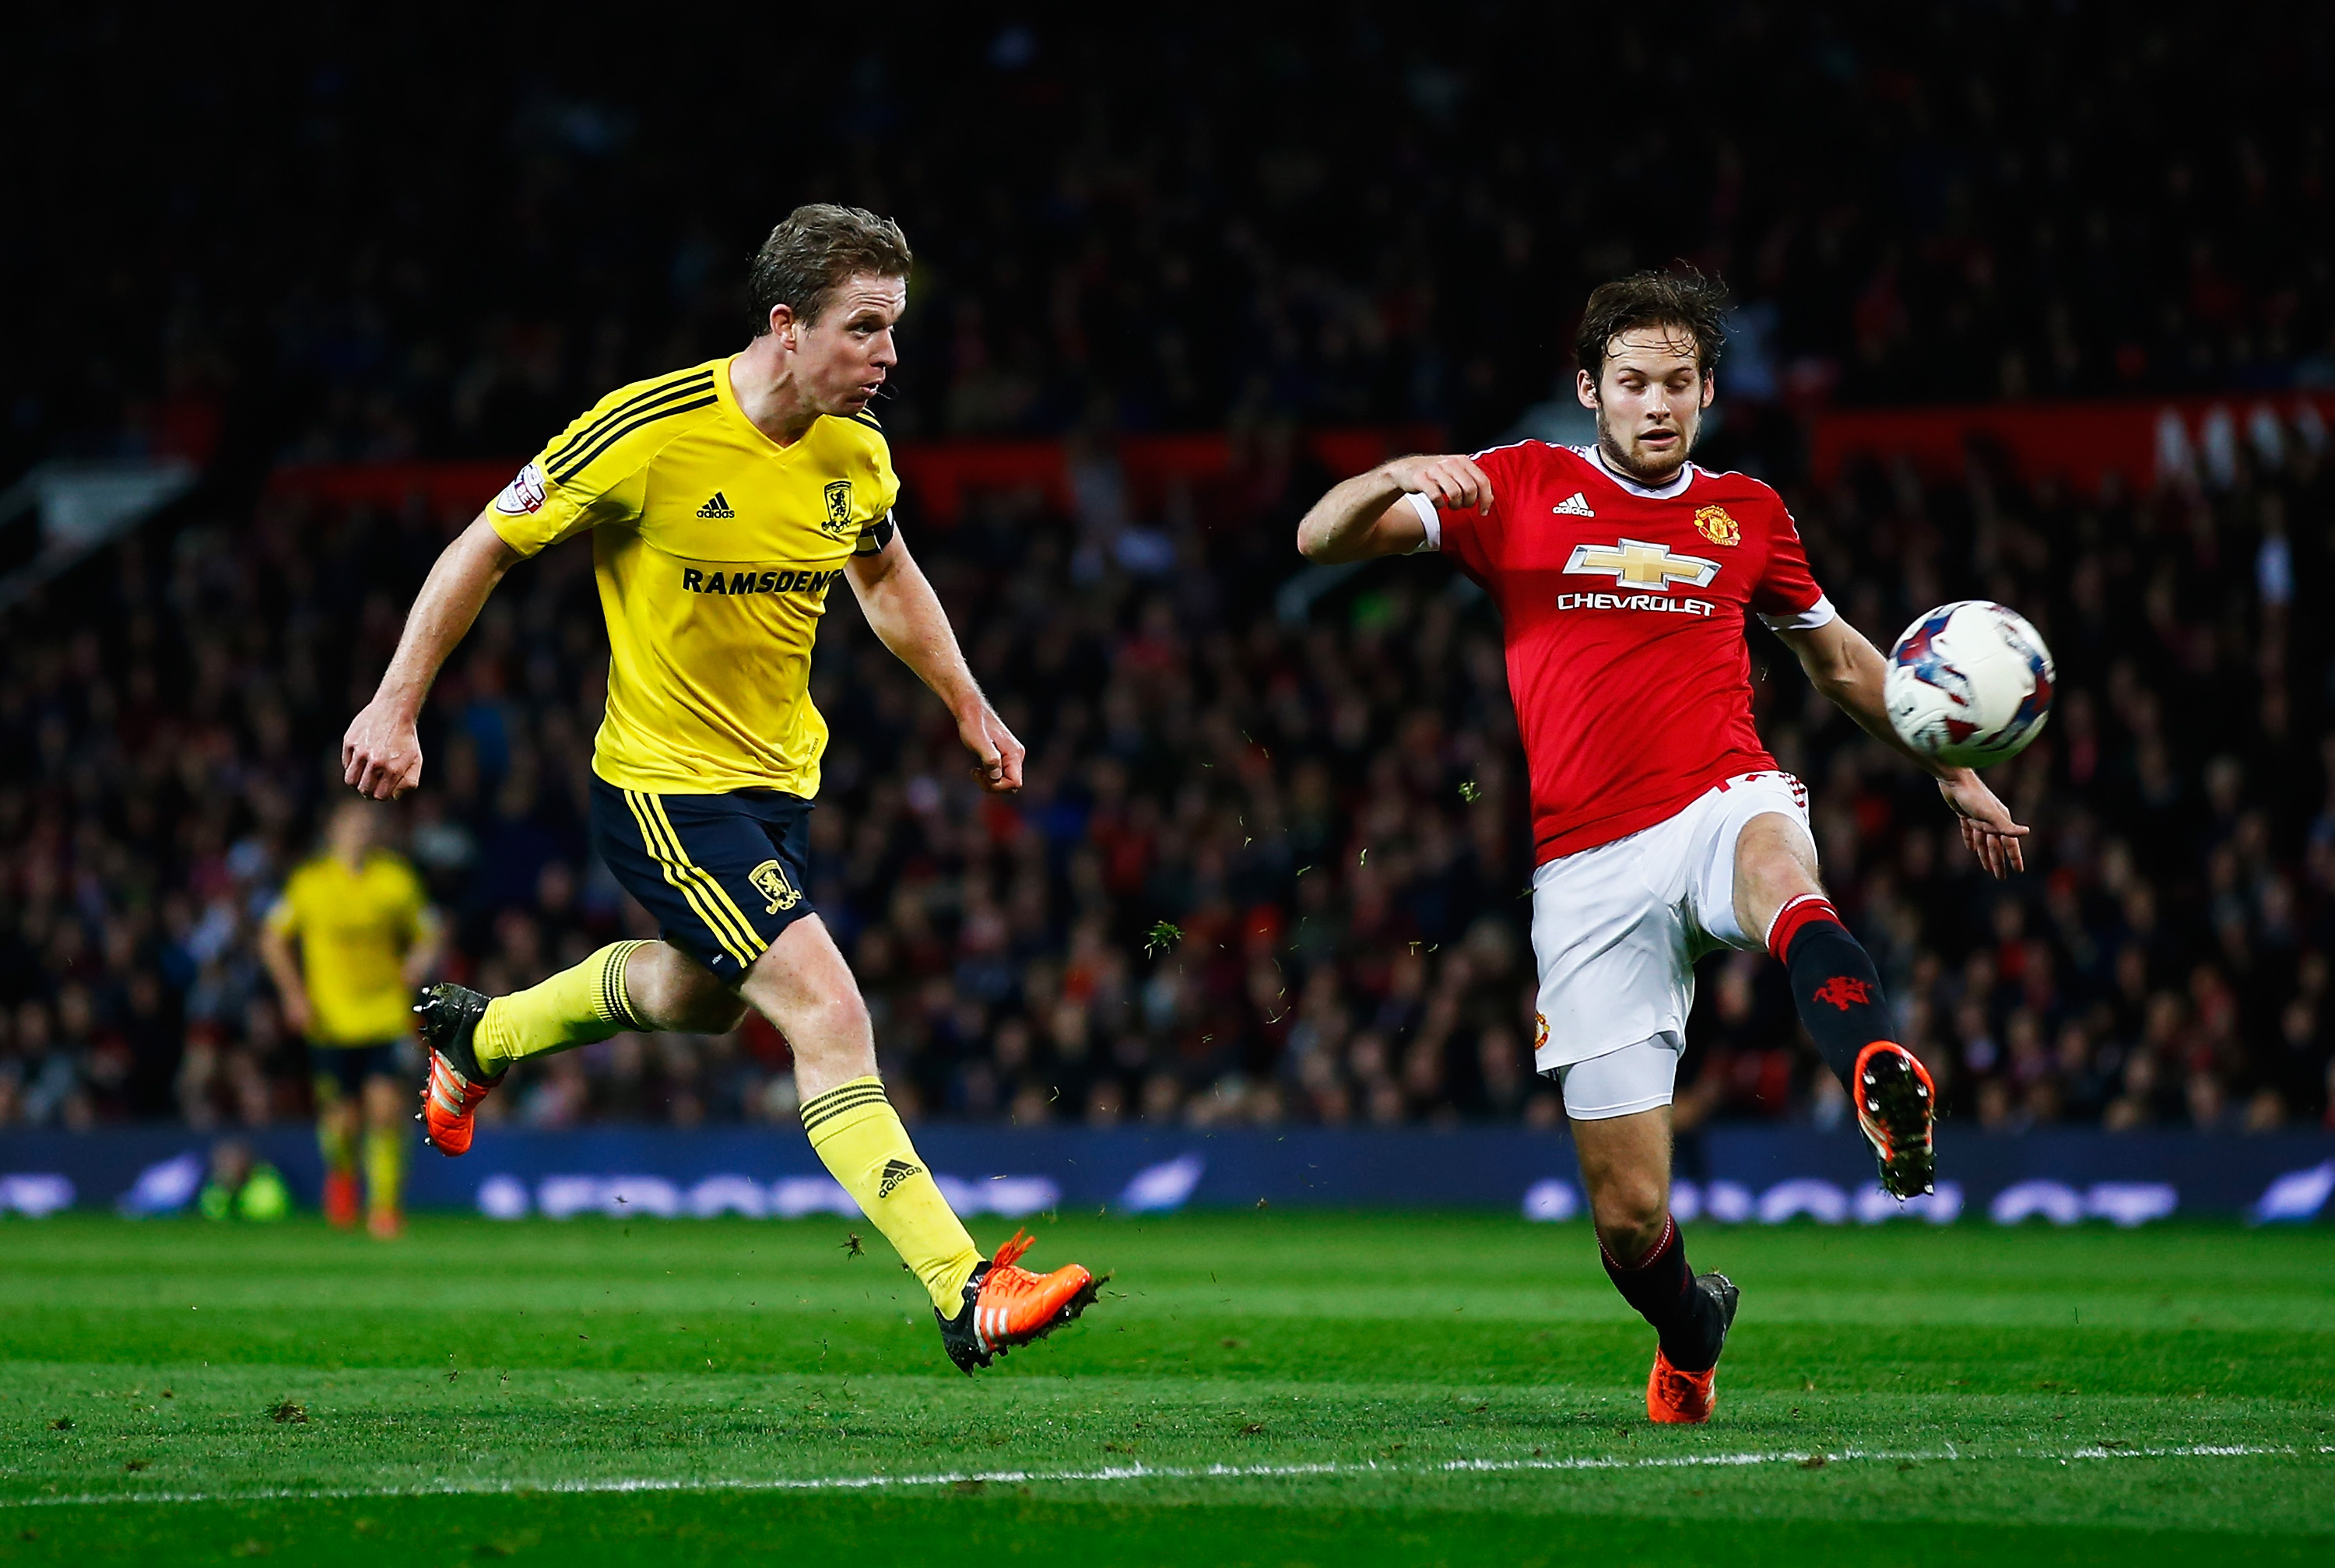 Manchester United's disallowed own goal was a work of art